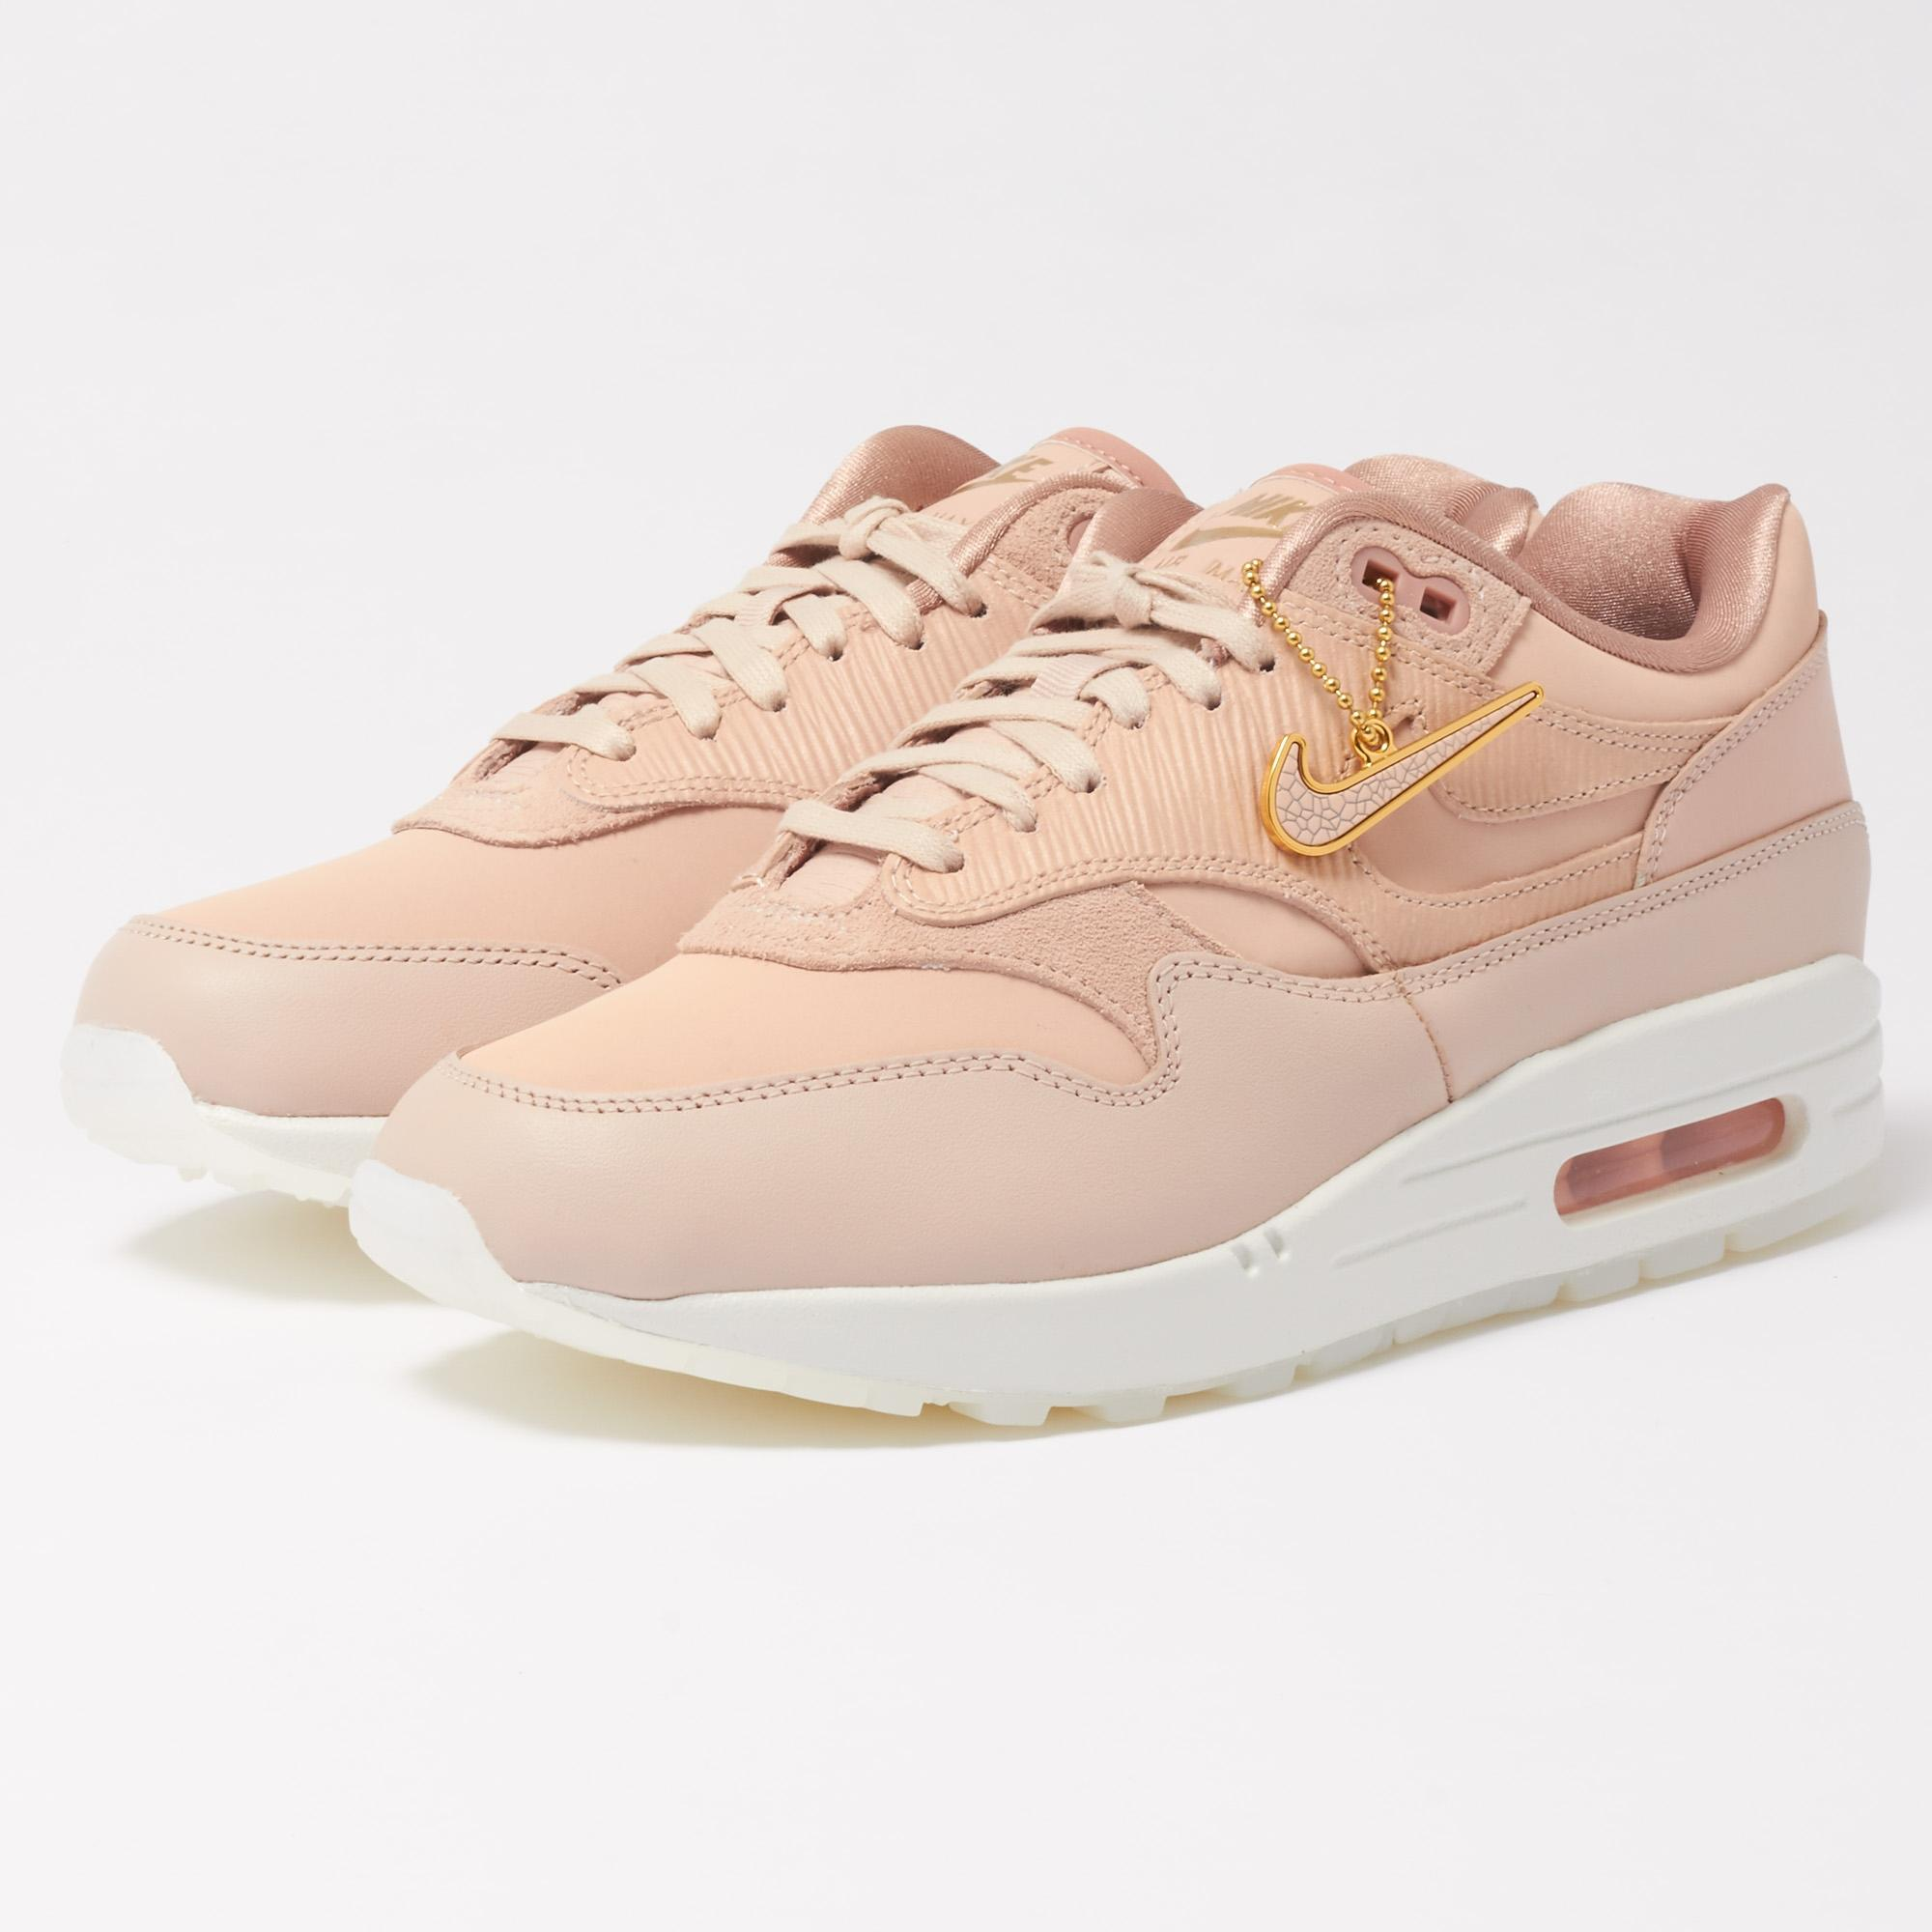 NIKE AIR MAX 1 PREMIUM WOMEN'S SHOE - Particle Beige/Particle Pink/Summit White/